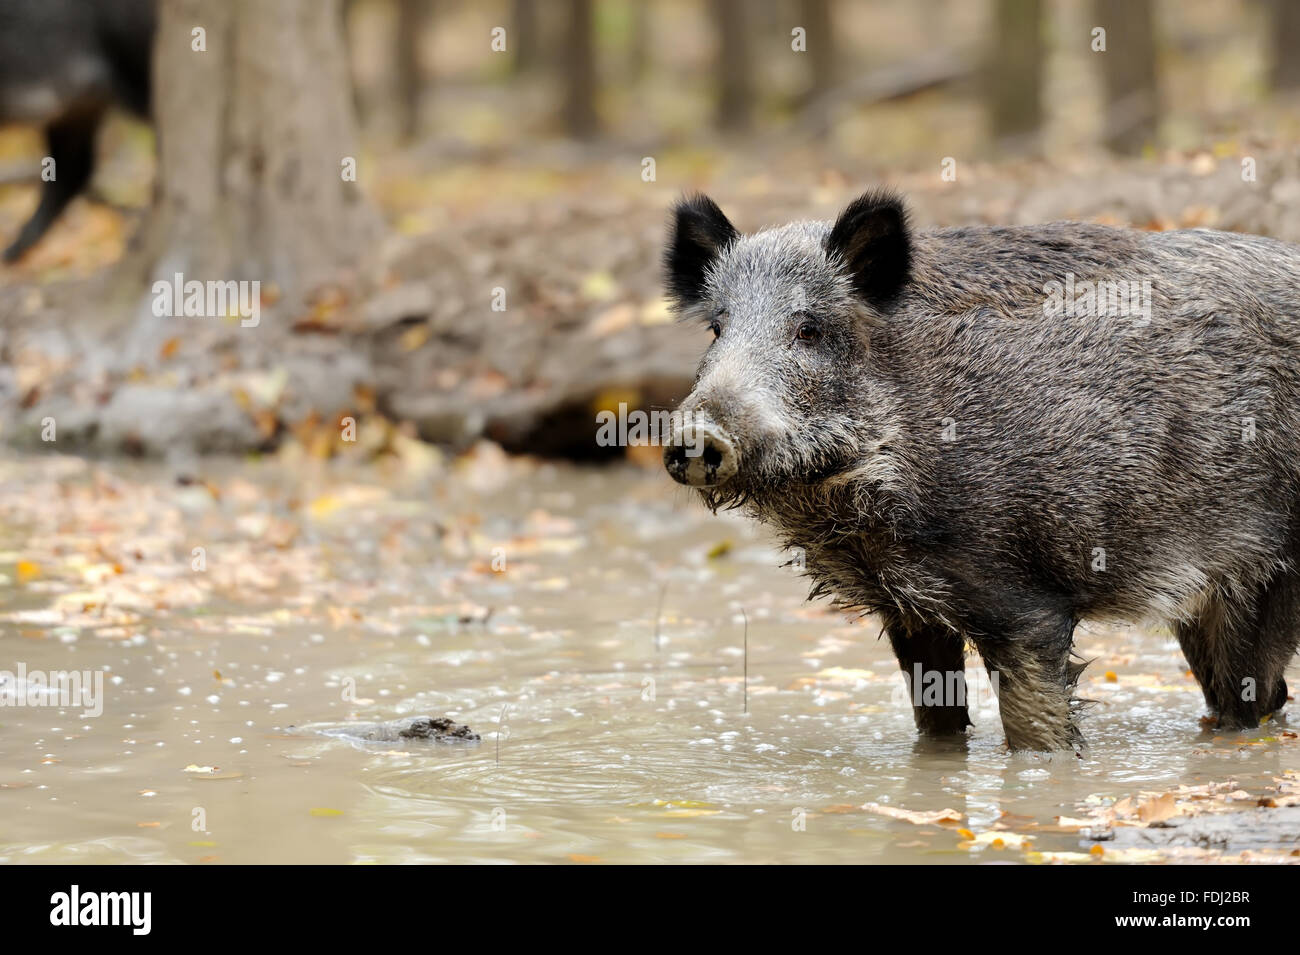 Wild boar in autumn forest. Boar in dirt - Stock Image